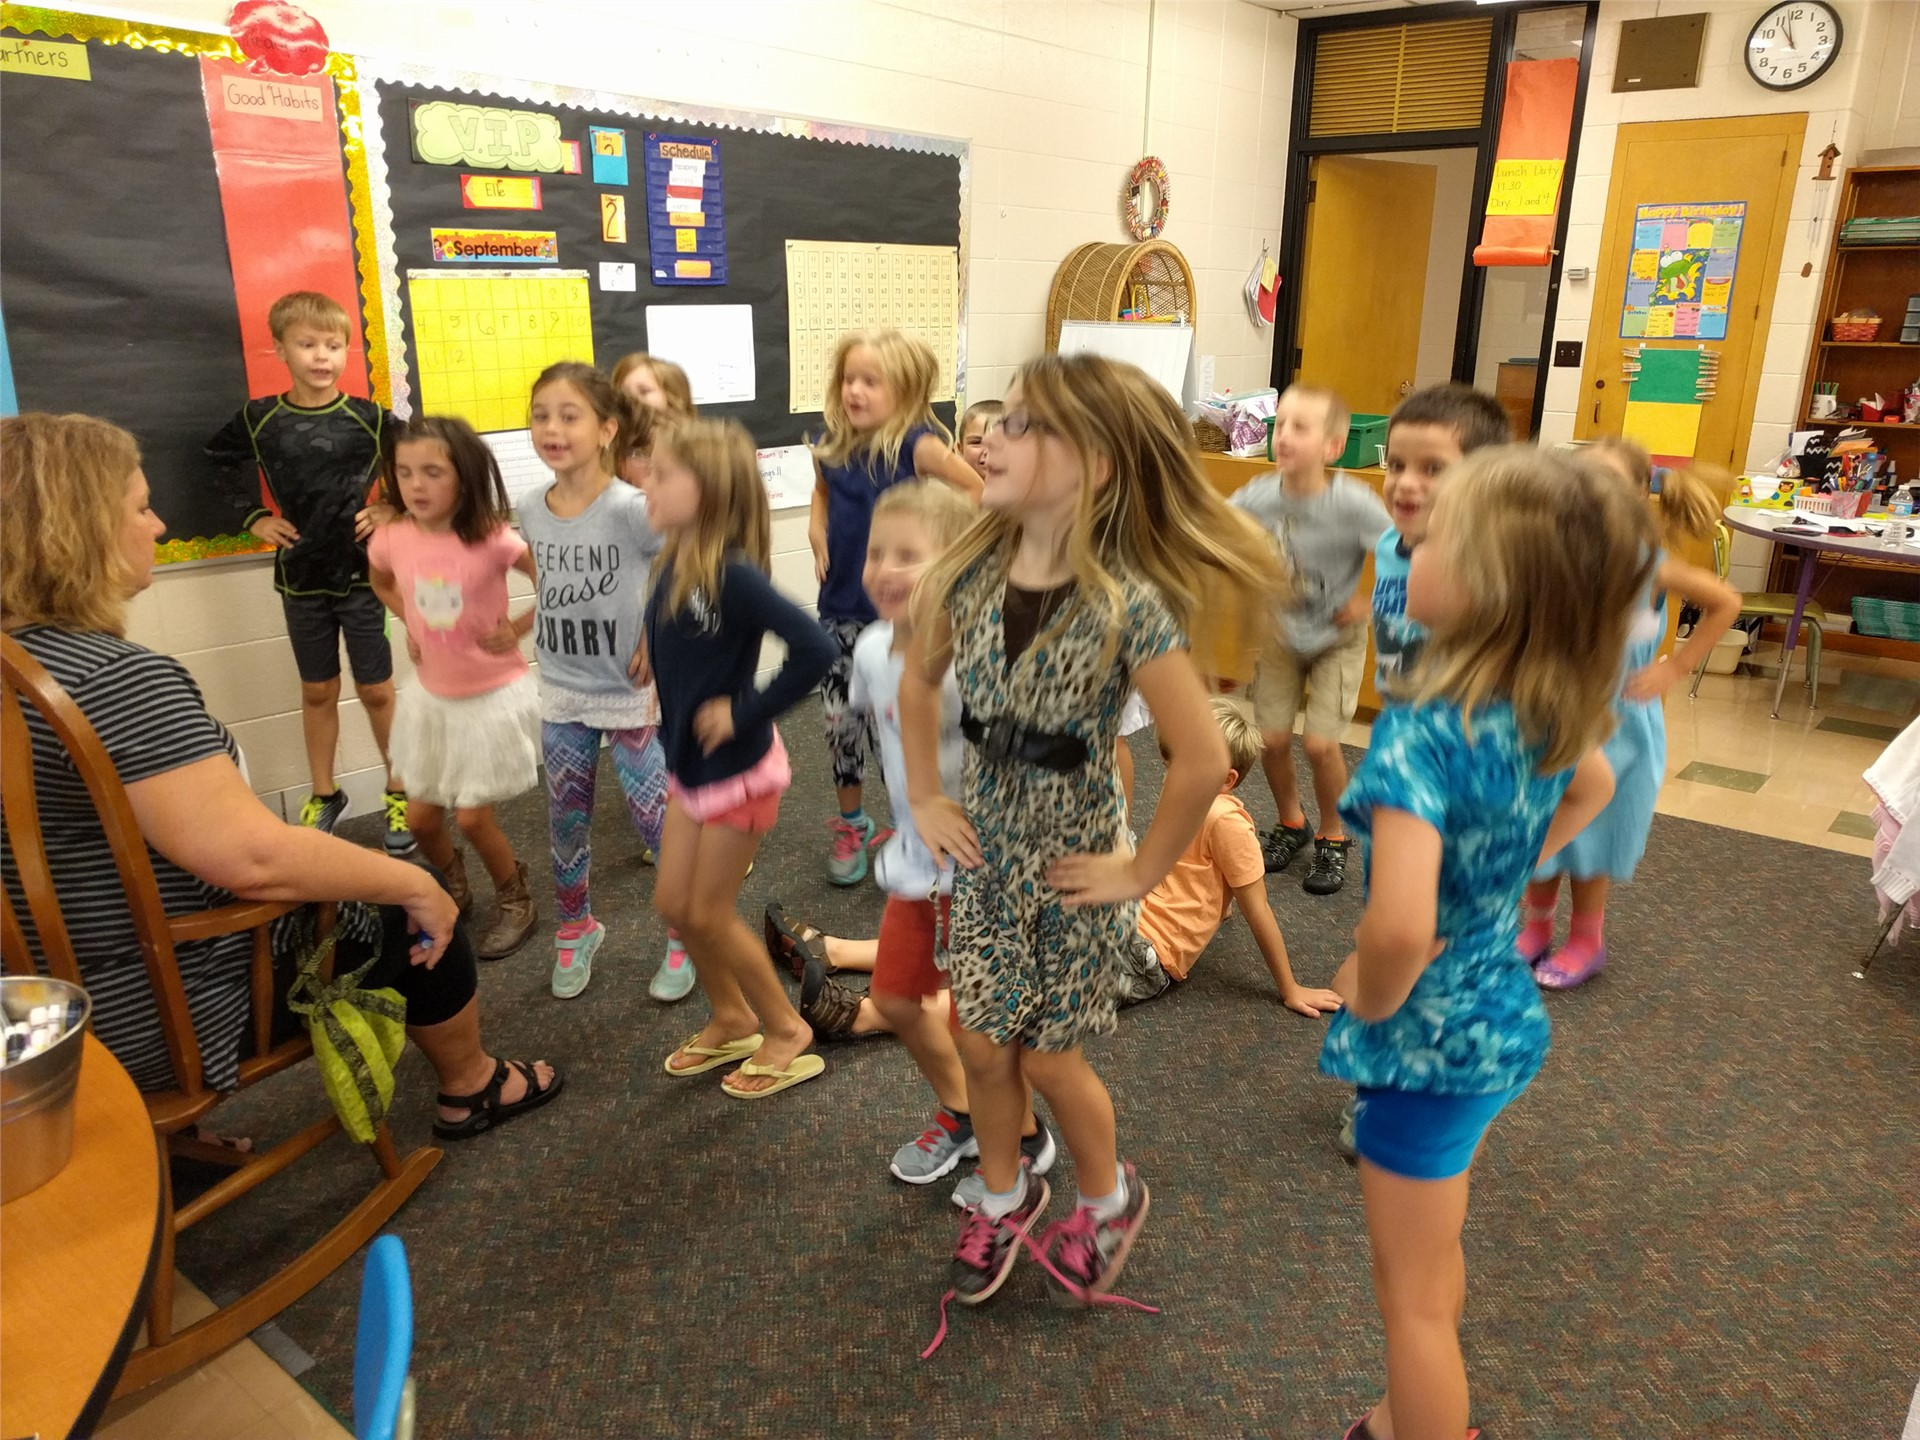 A mid-day dance party to release some energy!